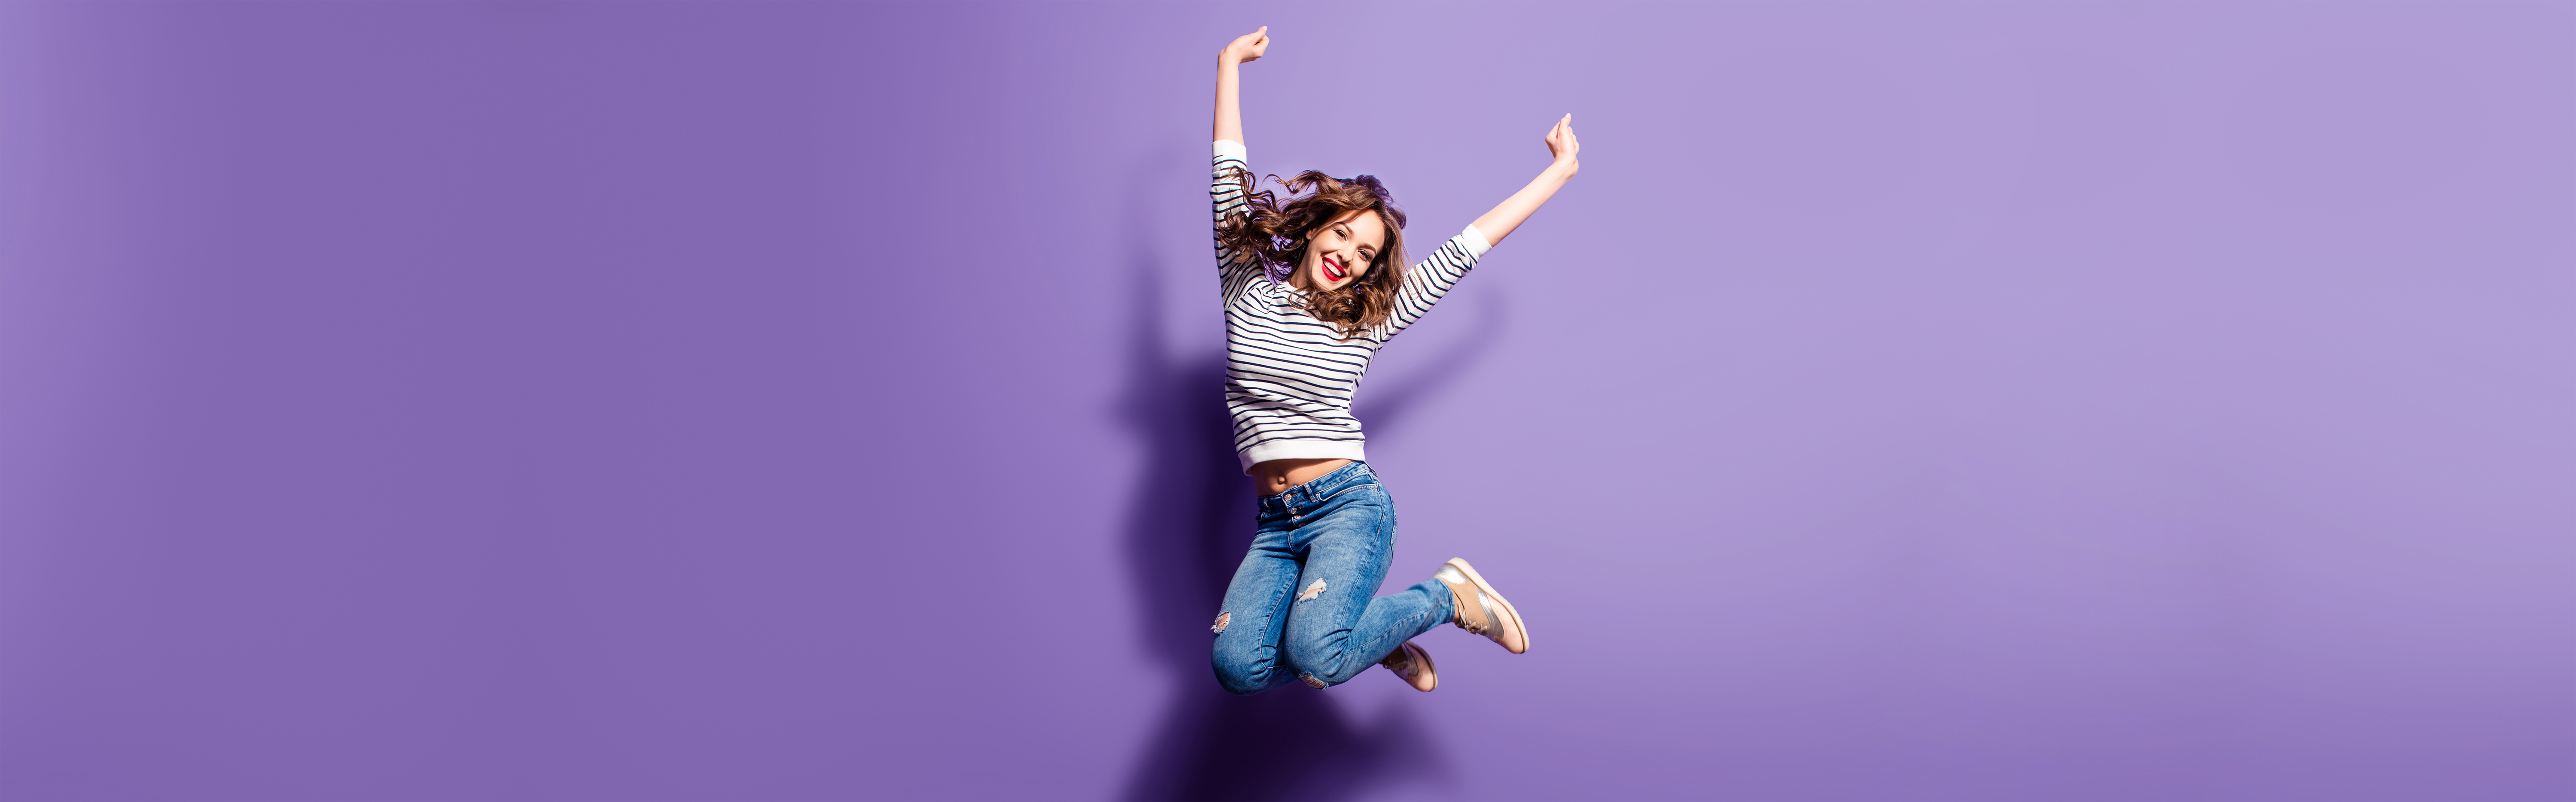 Portrait,Of,Cheerful,Positive,Girl,Jumping,In,The,Air,With